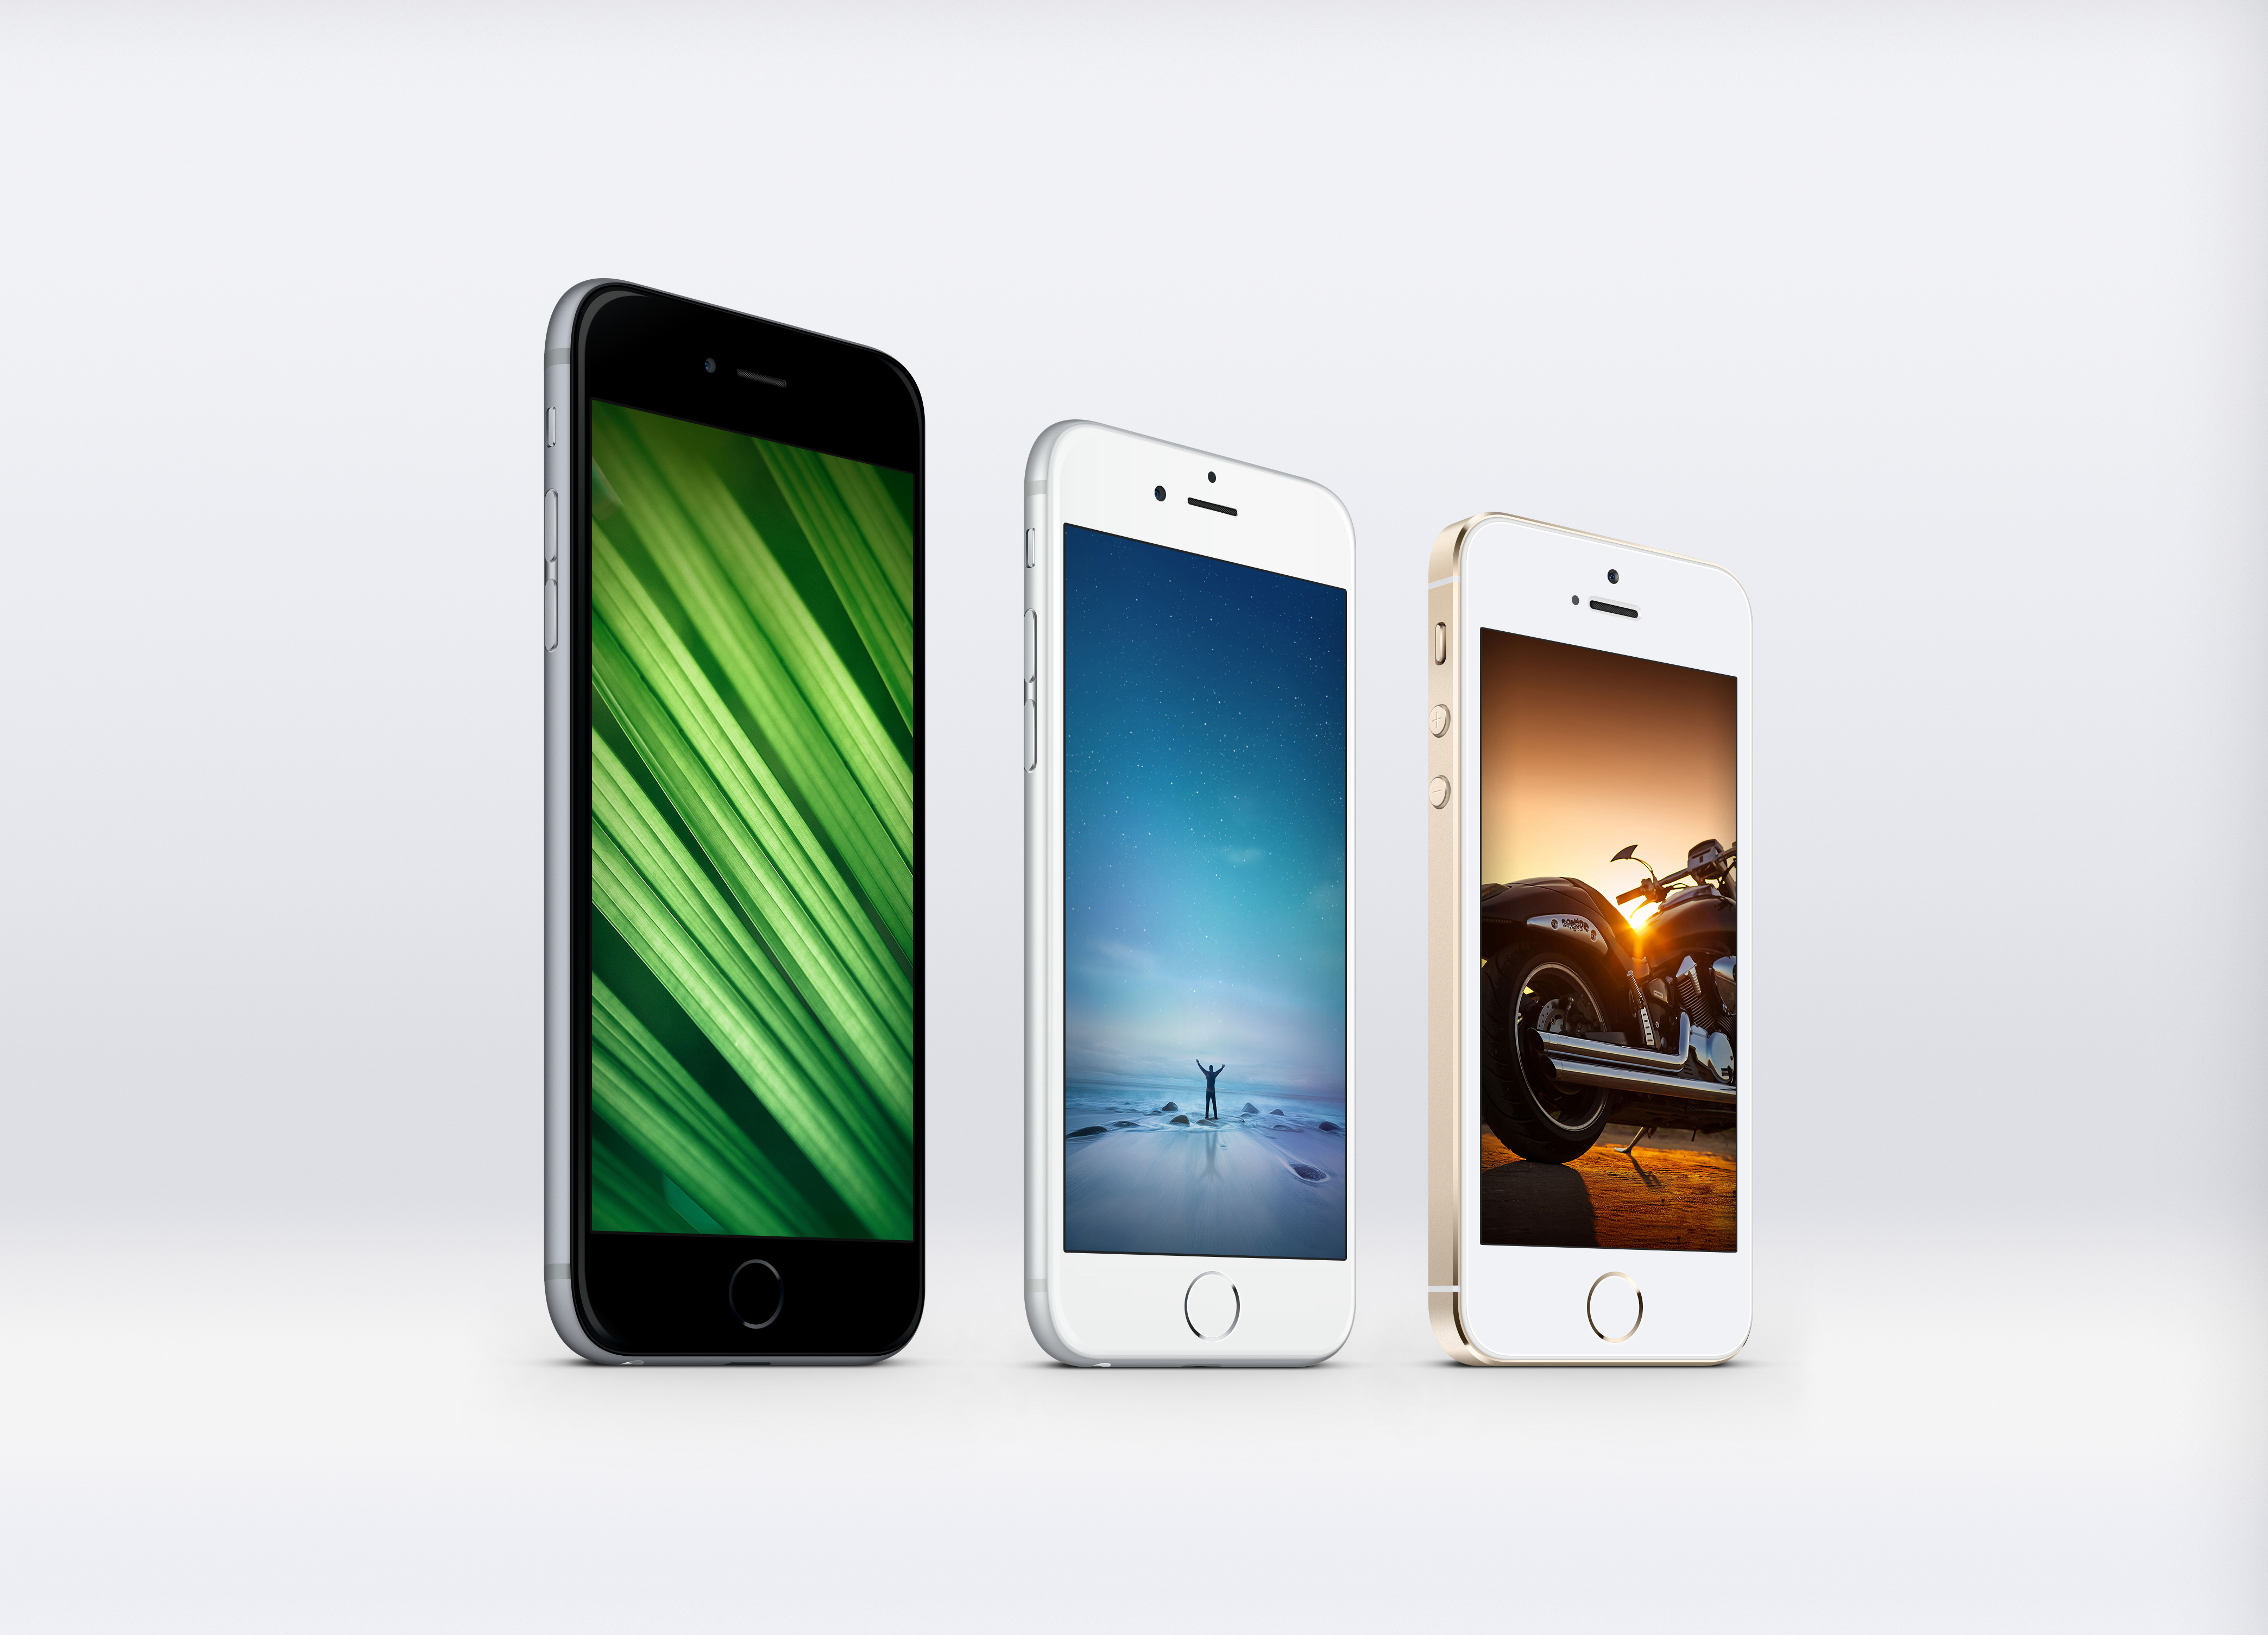 Miui 7 Wallpapers For iPhone by JasonZigrino